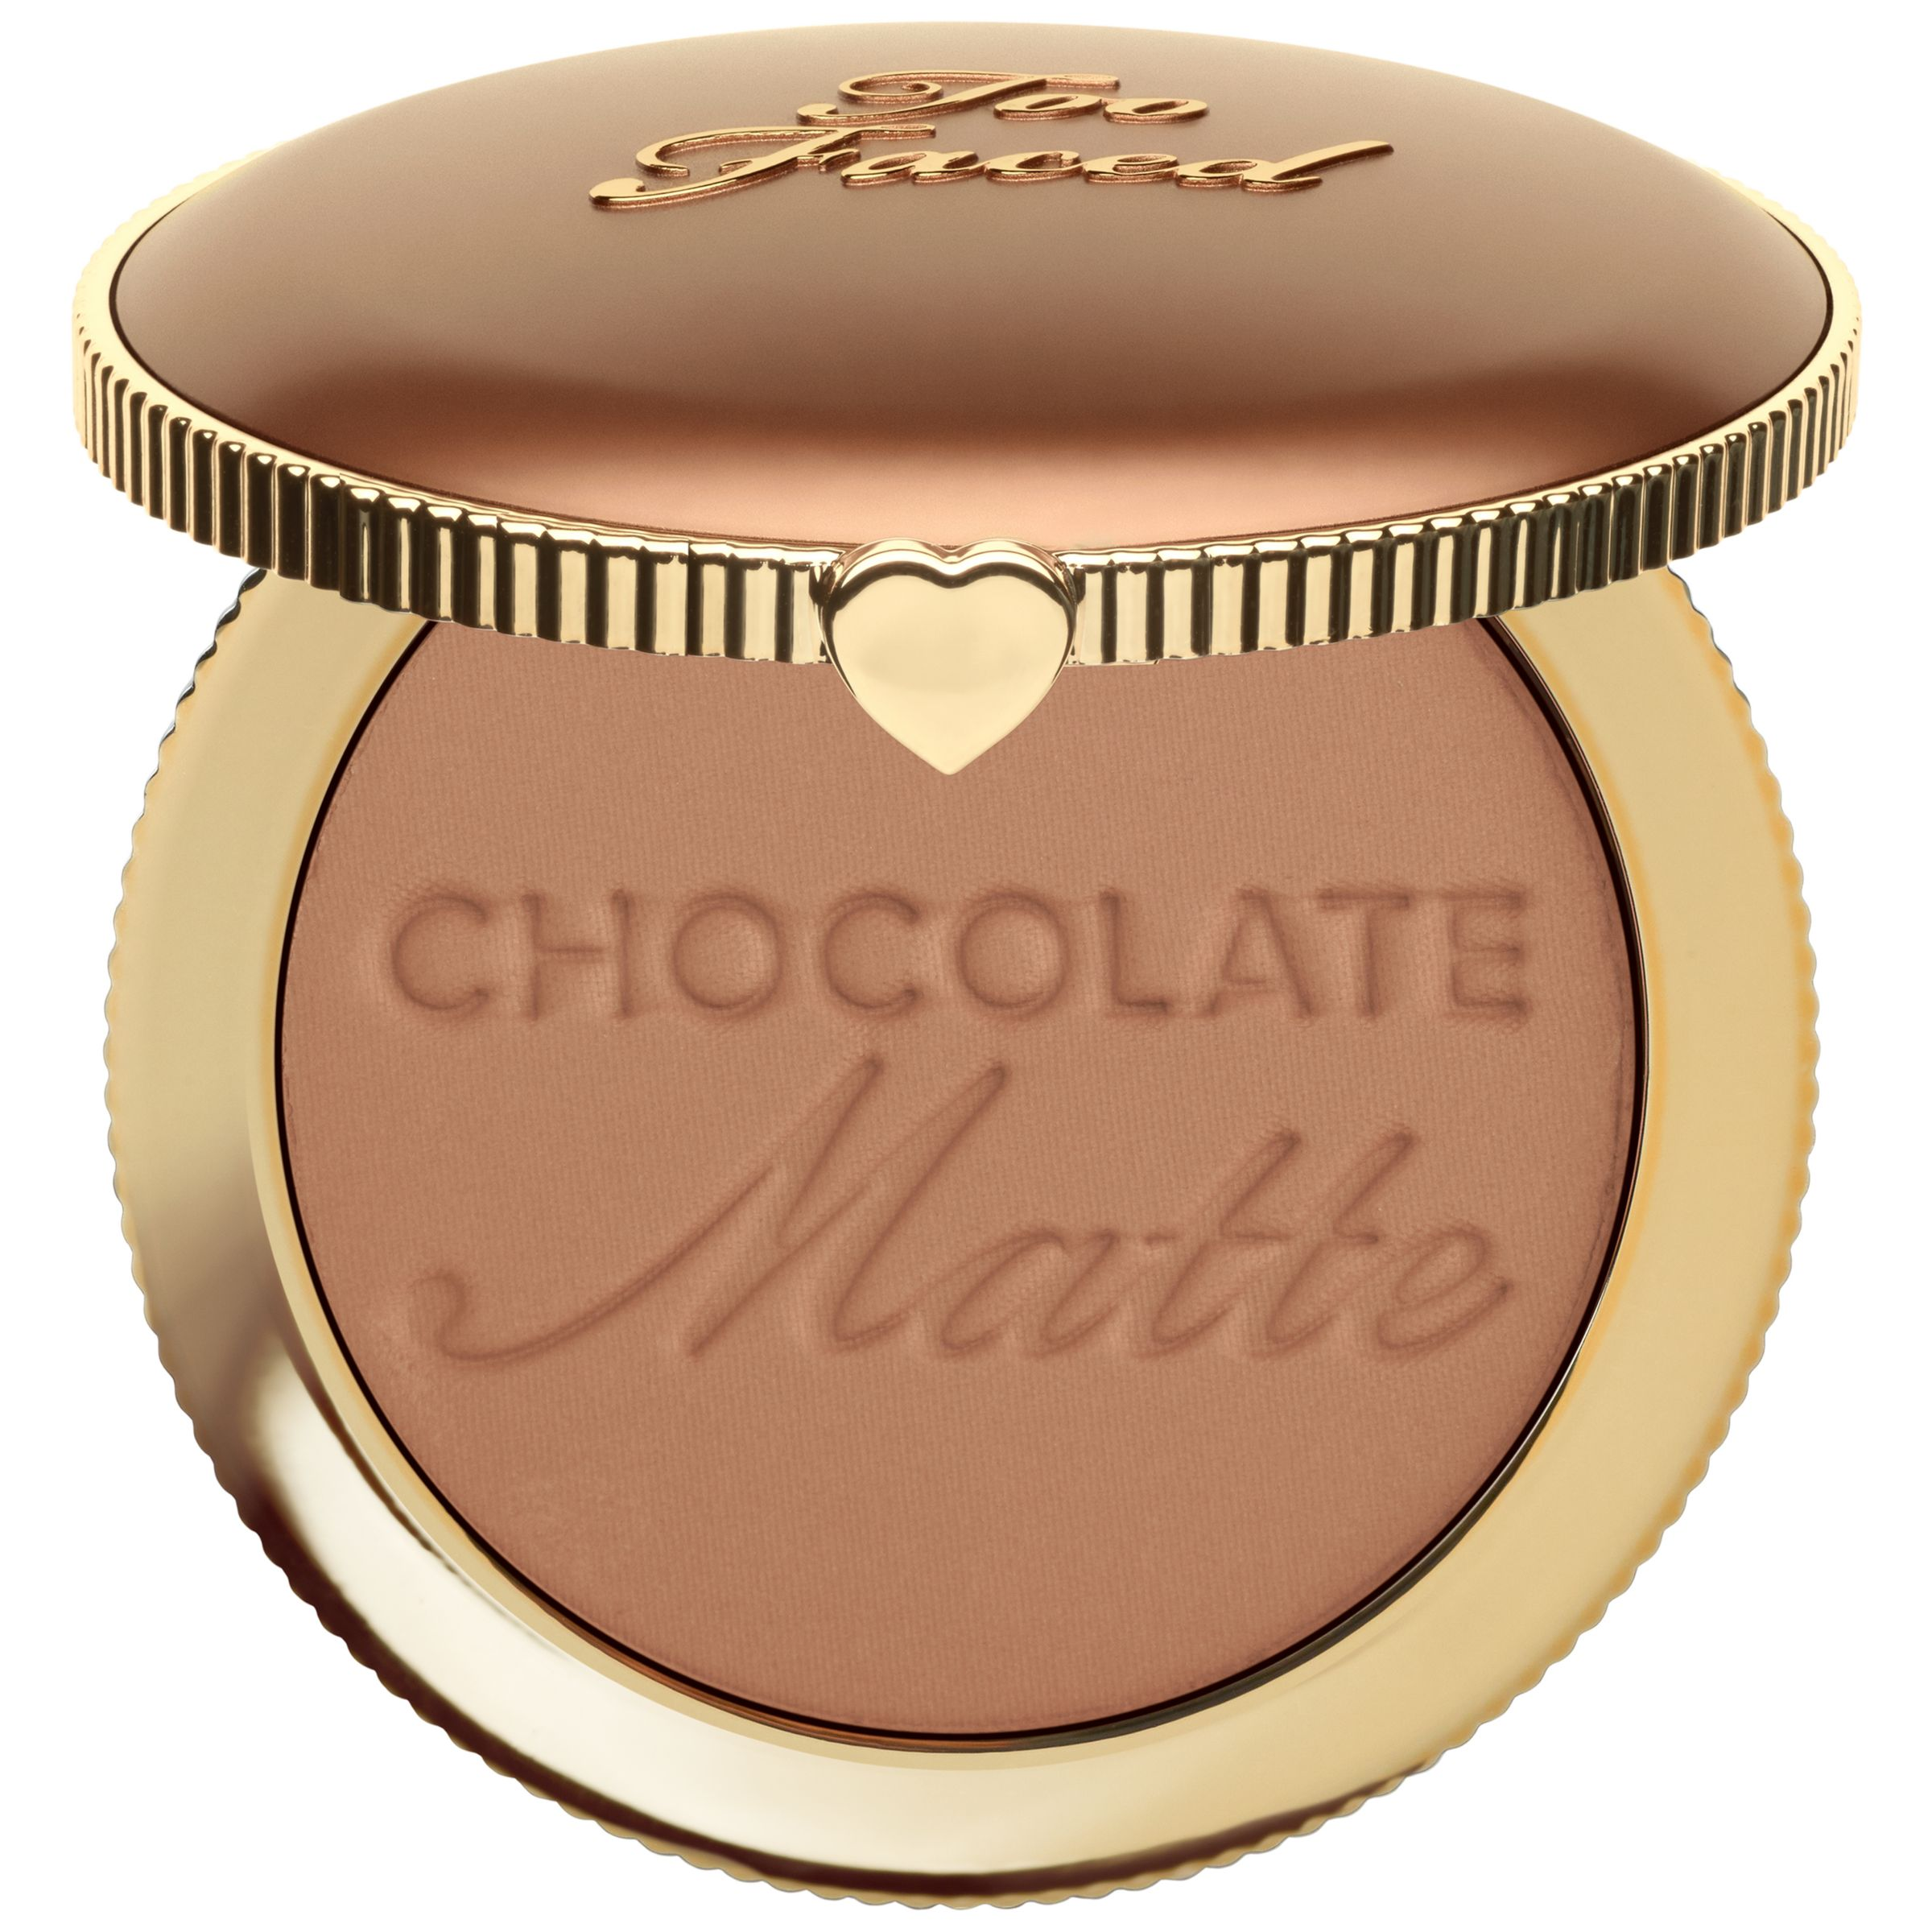 Too Faced Too Faced Chocolate Soleil Bronzer